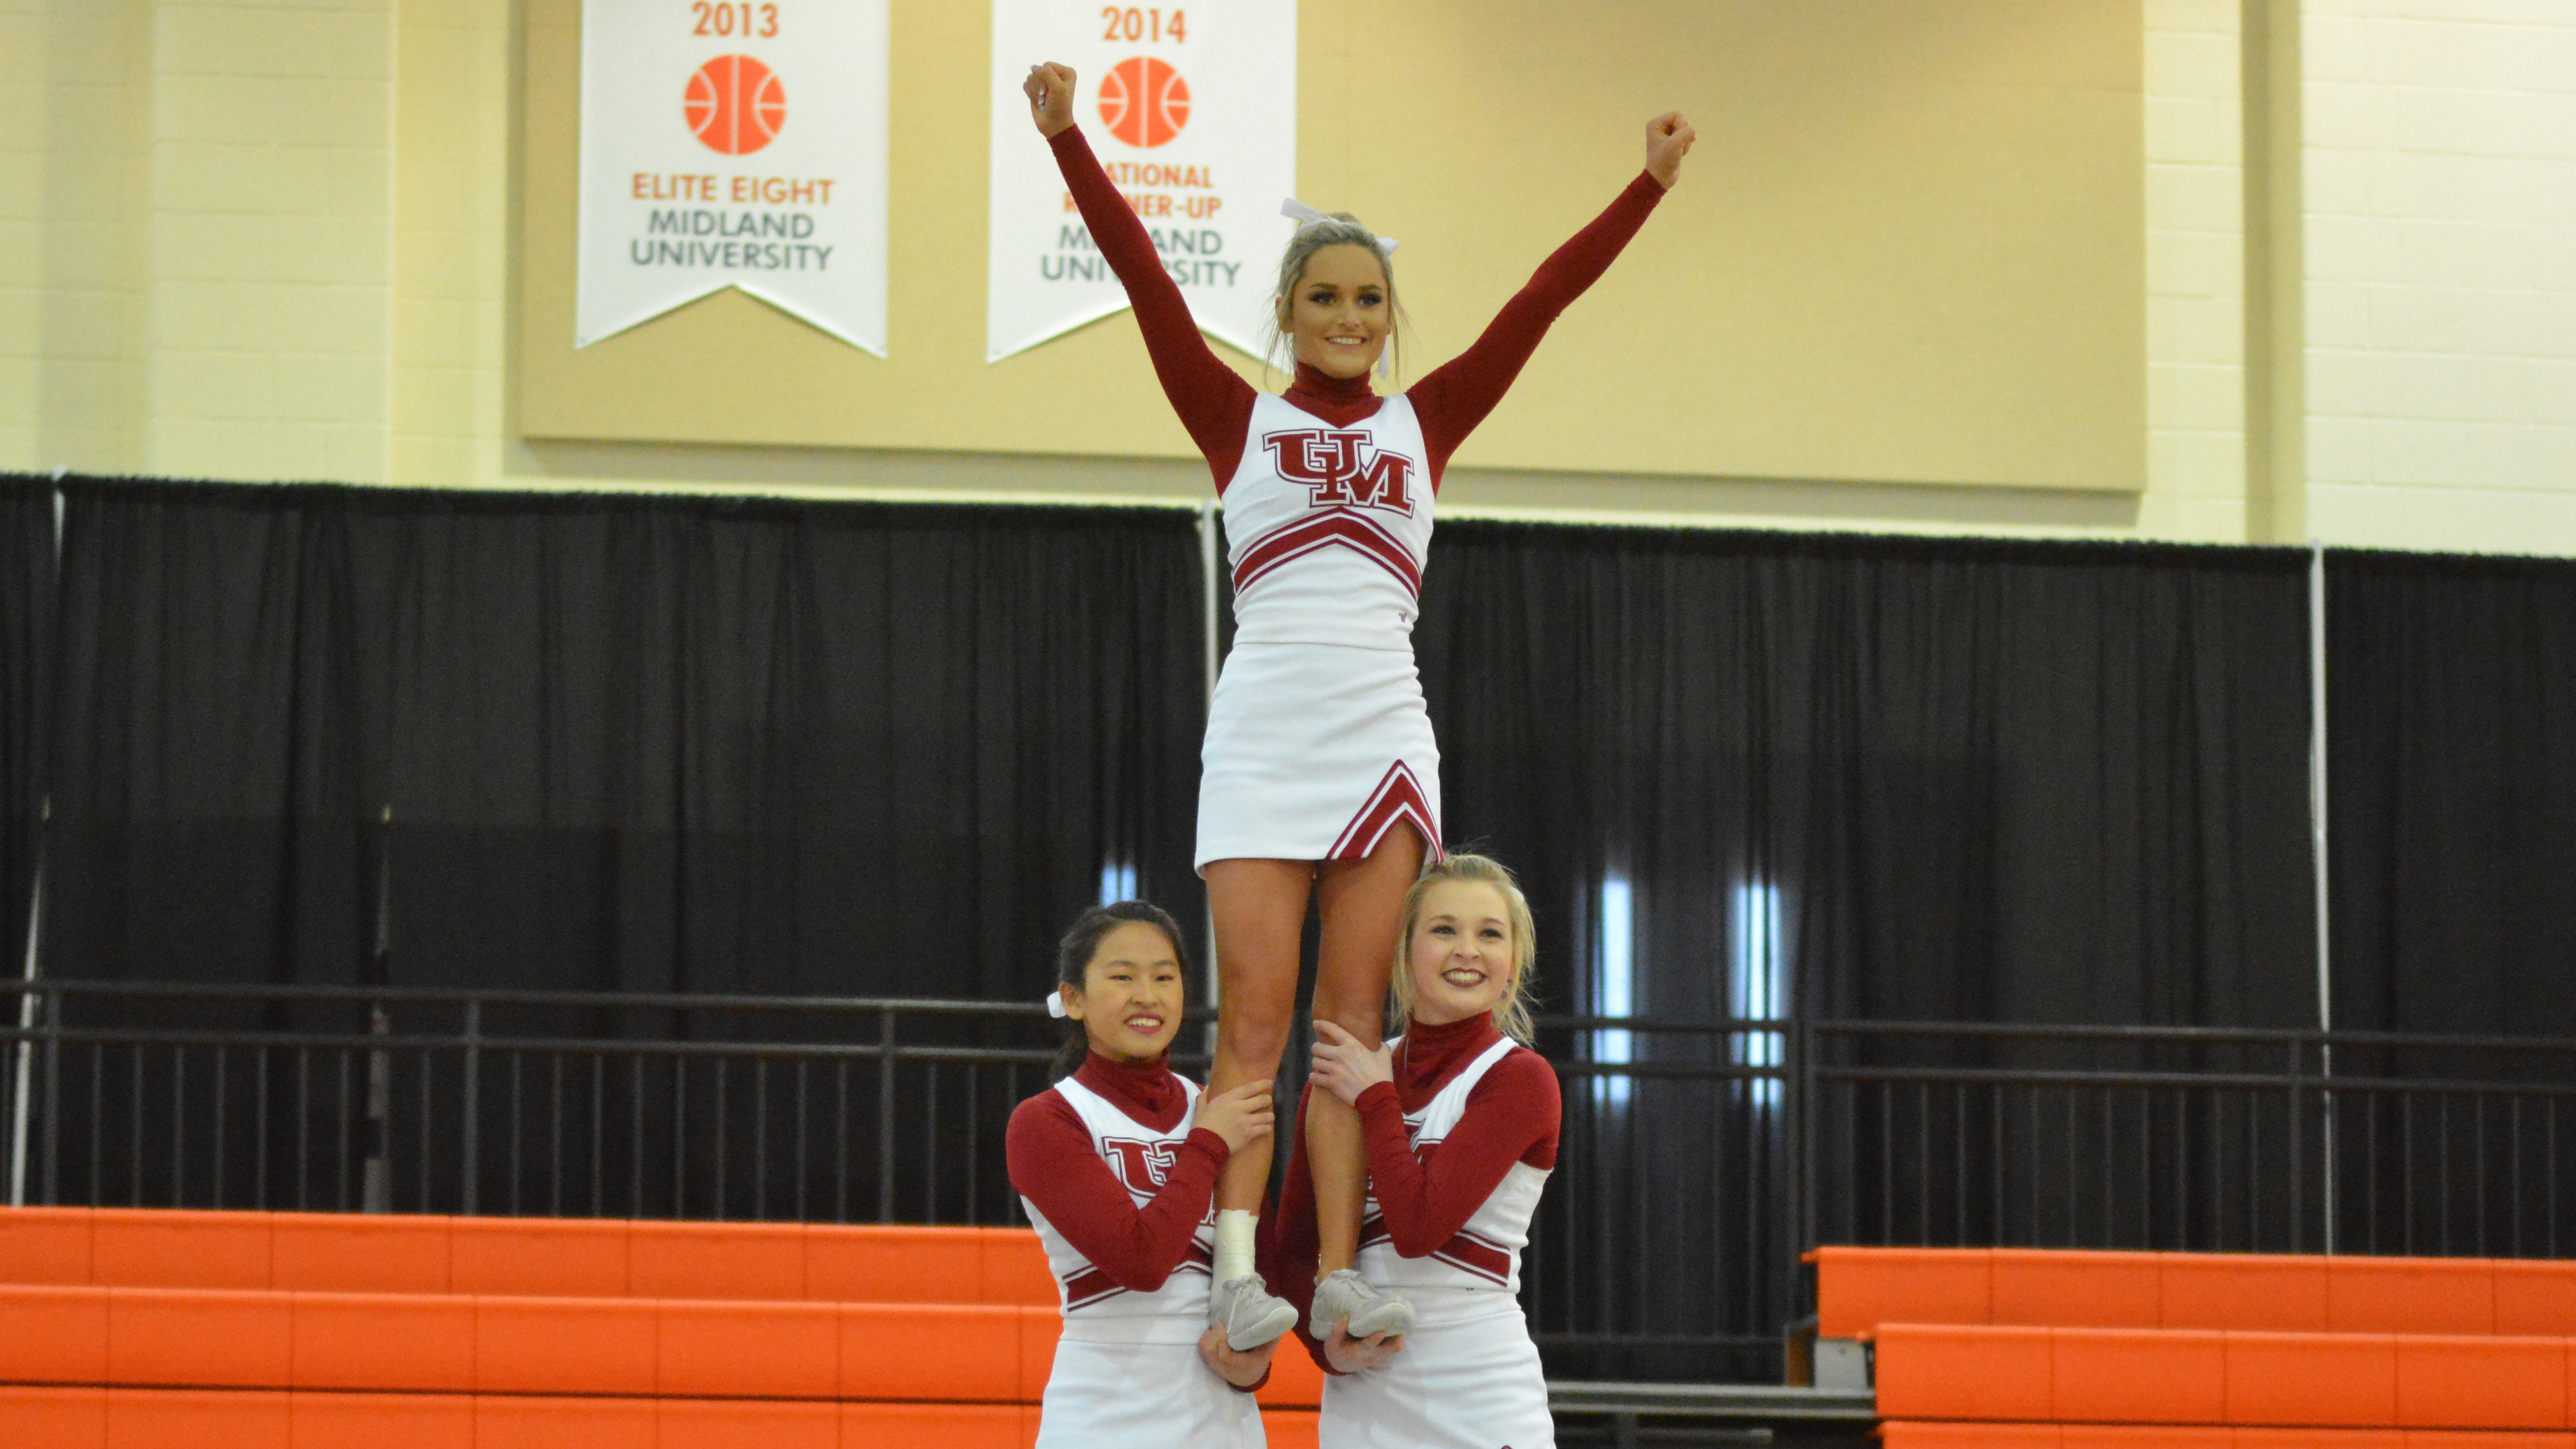 Qualifiers for Competitive Cheer Championship Announced